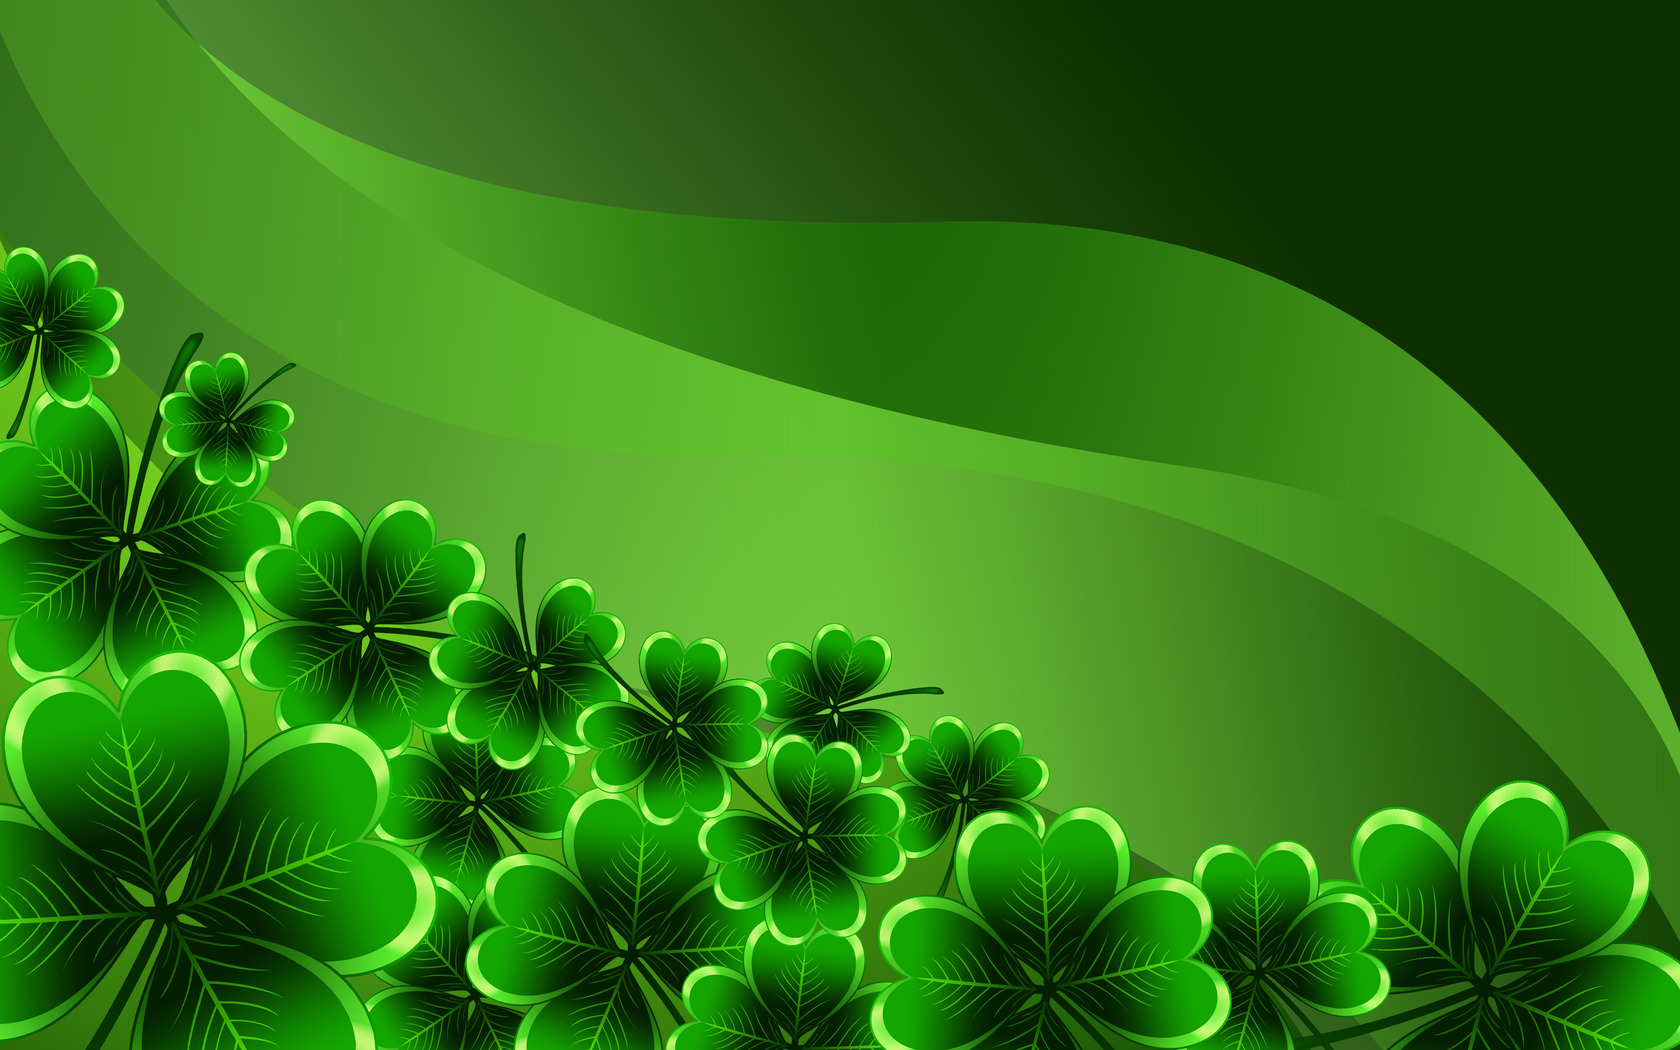 Download Shamrocks wallpaper 1680x1050